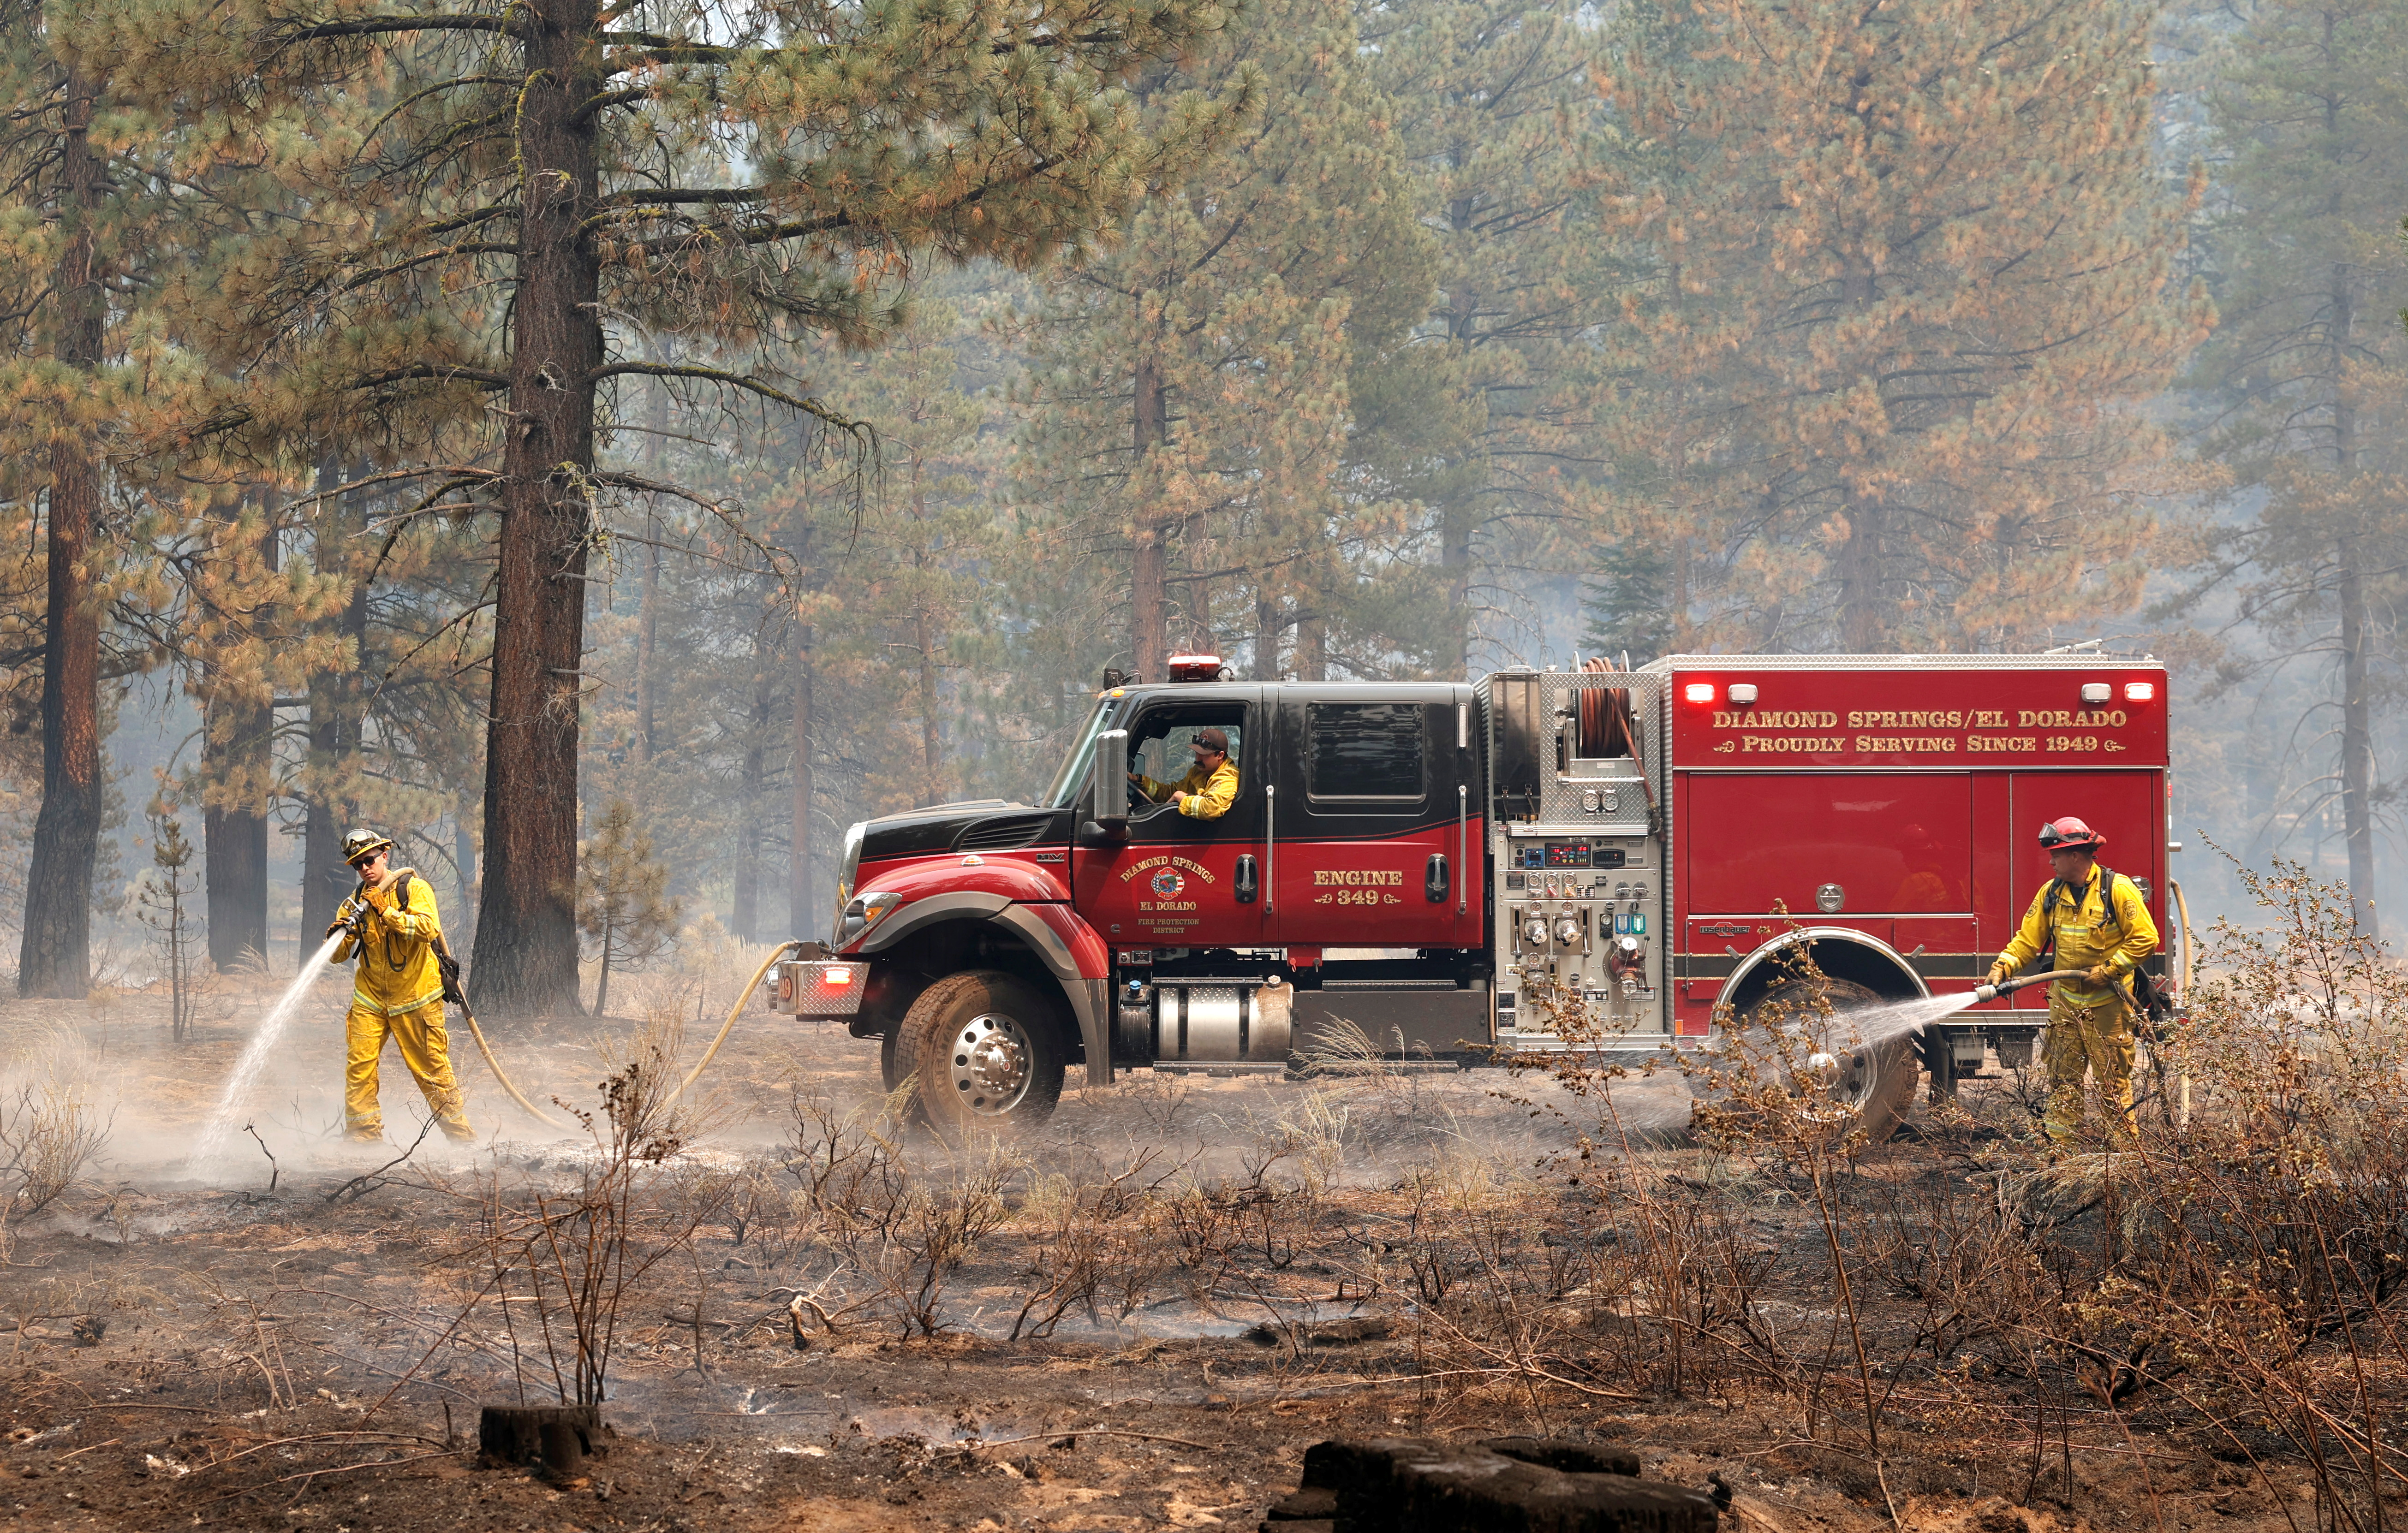 Firefighters knock down hot spots as The Caldor Fire burns near South Lake Tahoe, California, U.S., September 1, 2021. REUTERS/Fred Greaves